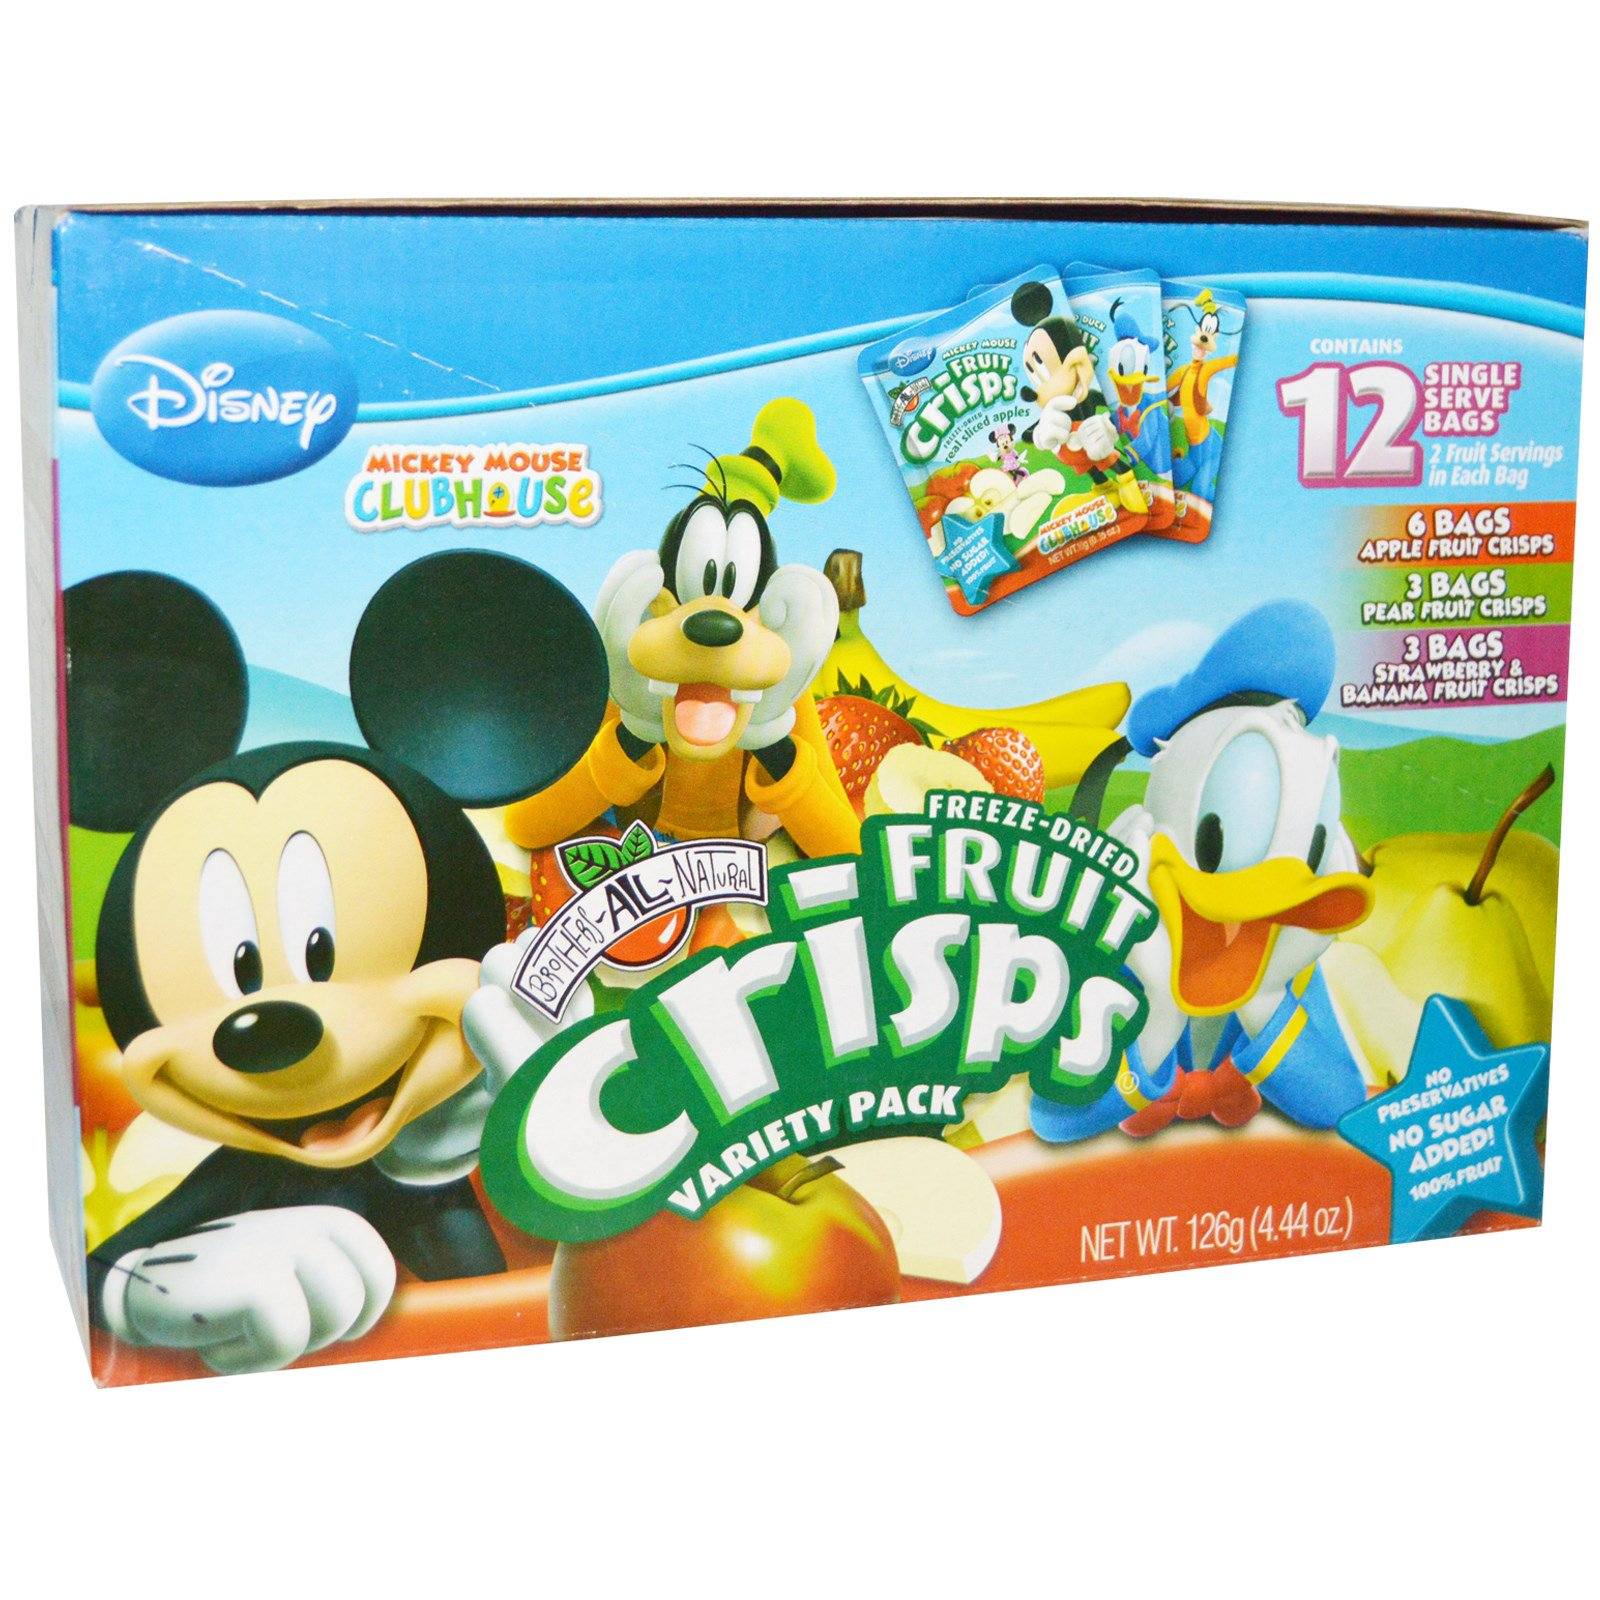 Brothers-All-Natural, Disney, Freeze-Dried-Fruit Crisps, ...